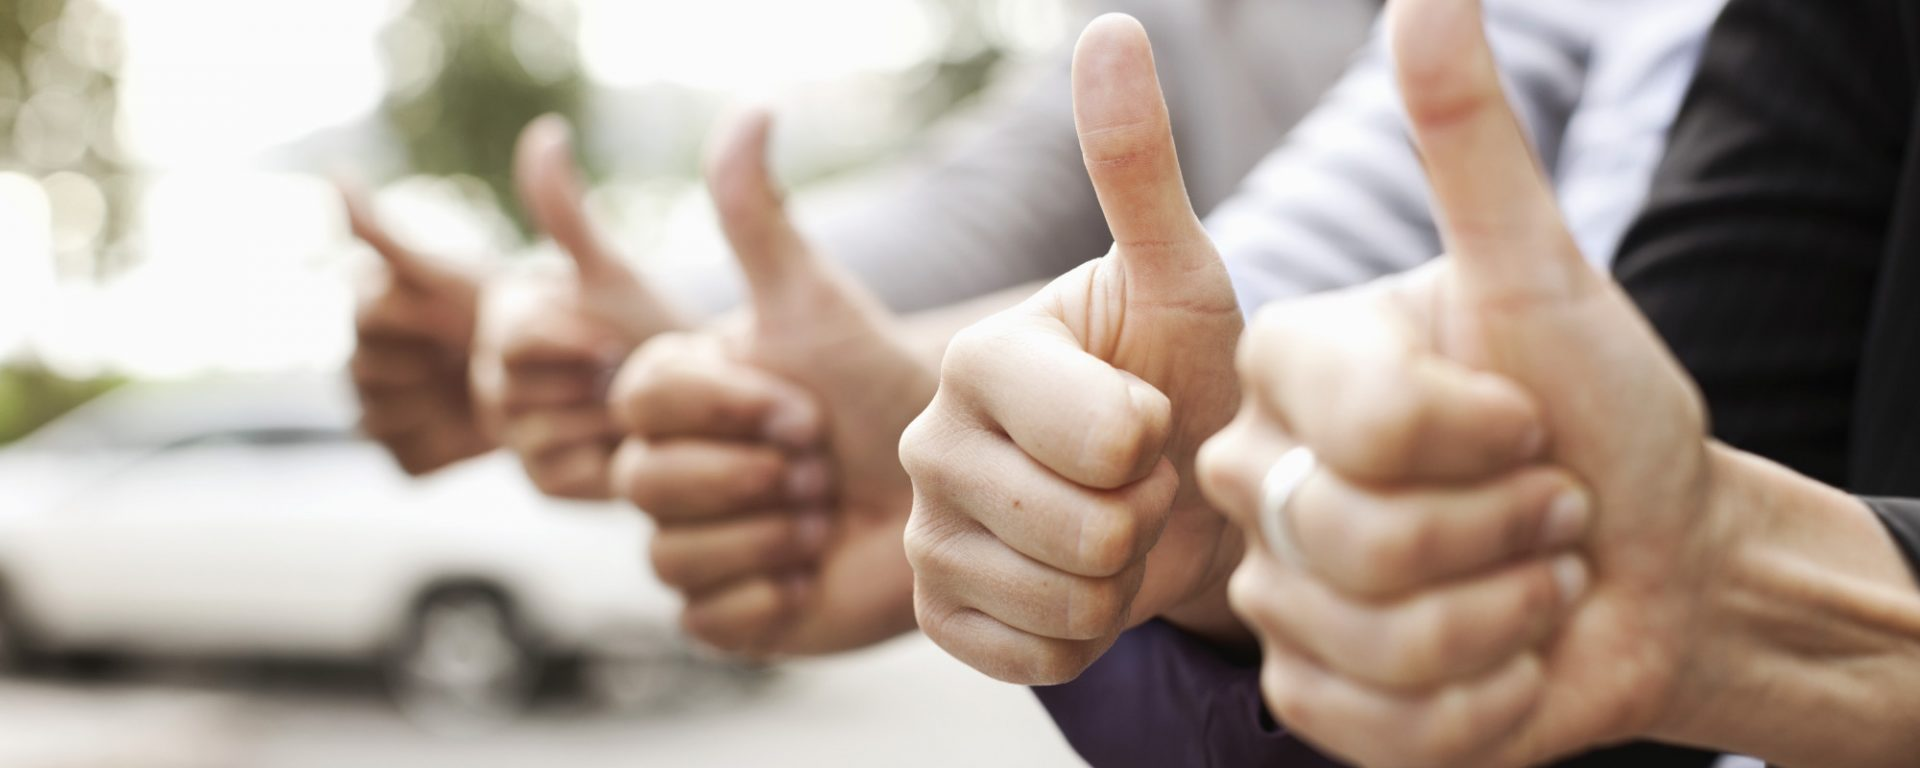 Human hands showing thumbs up sign